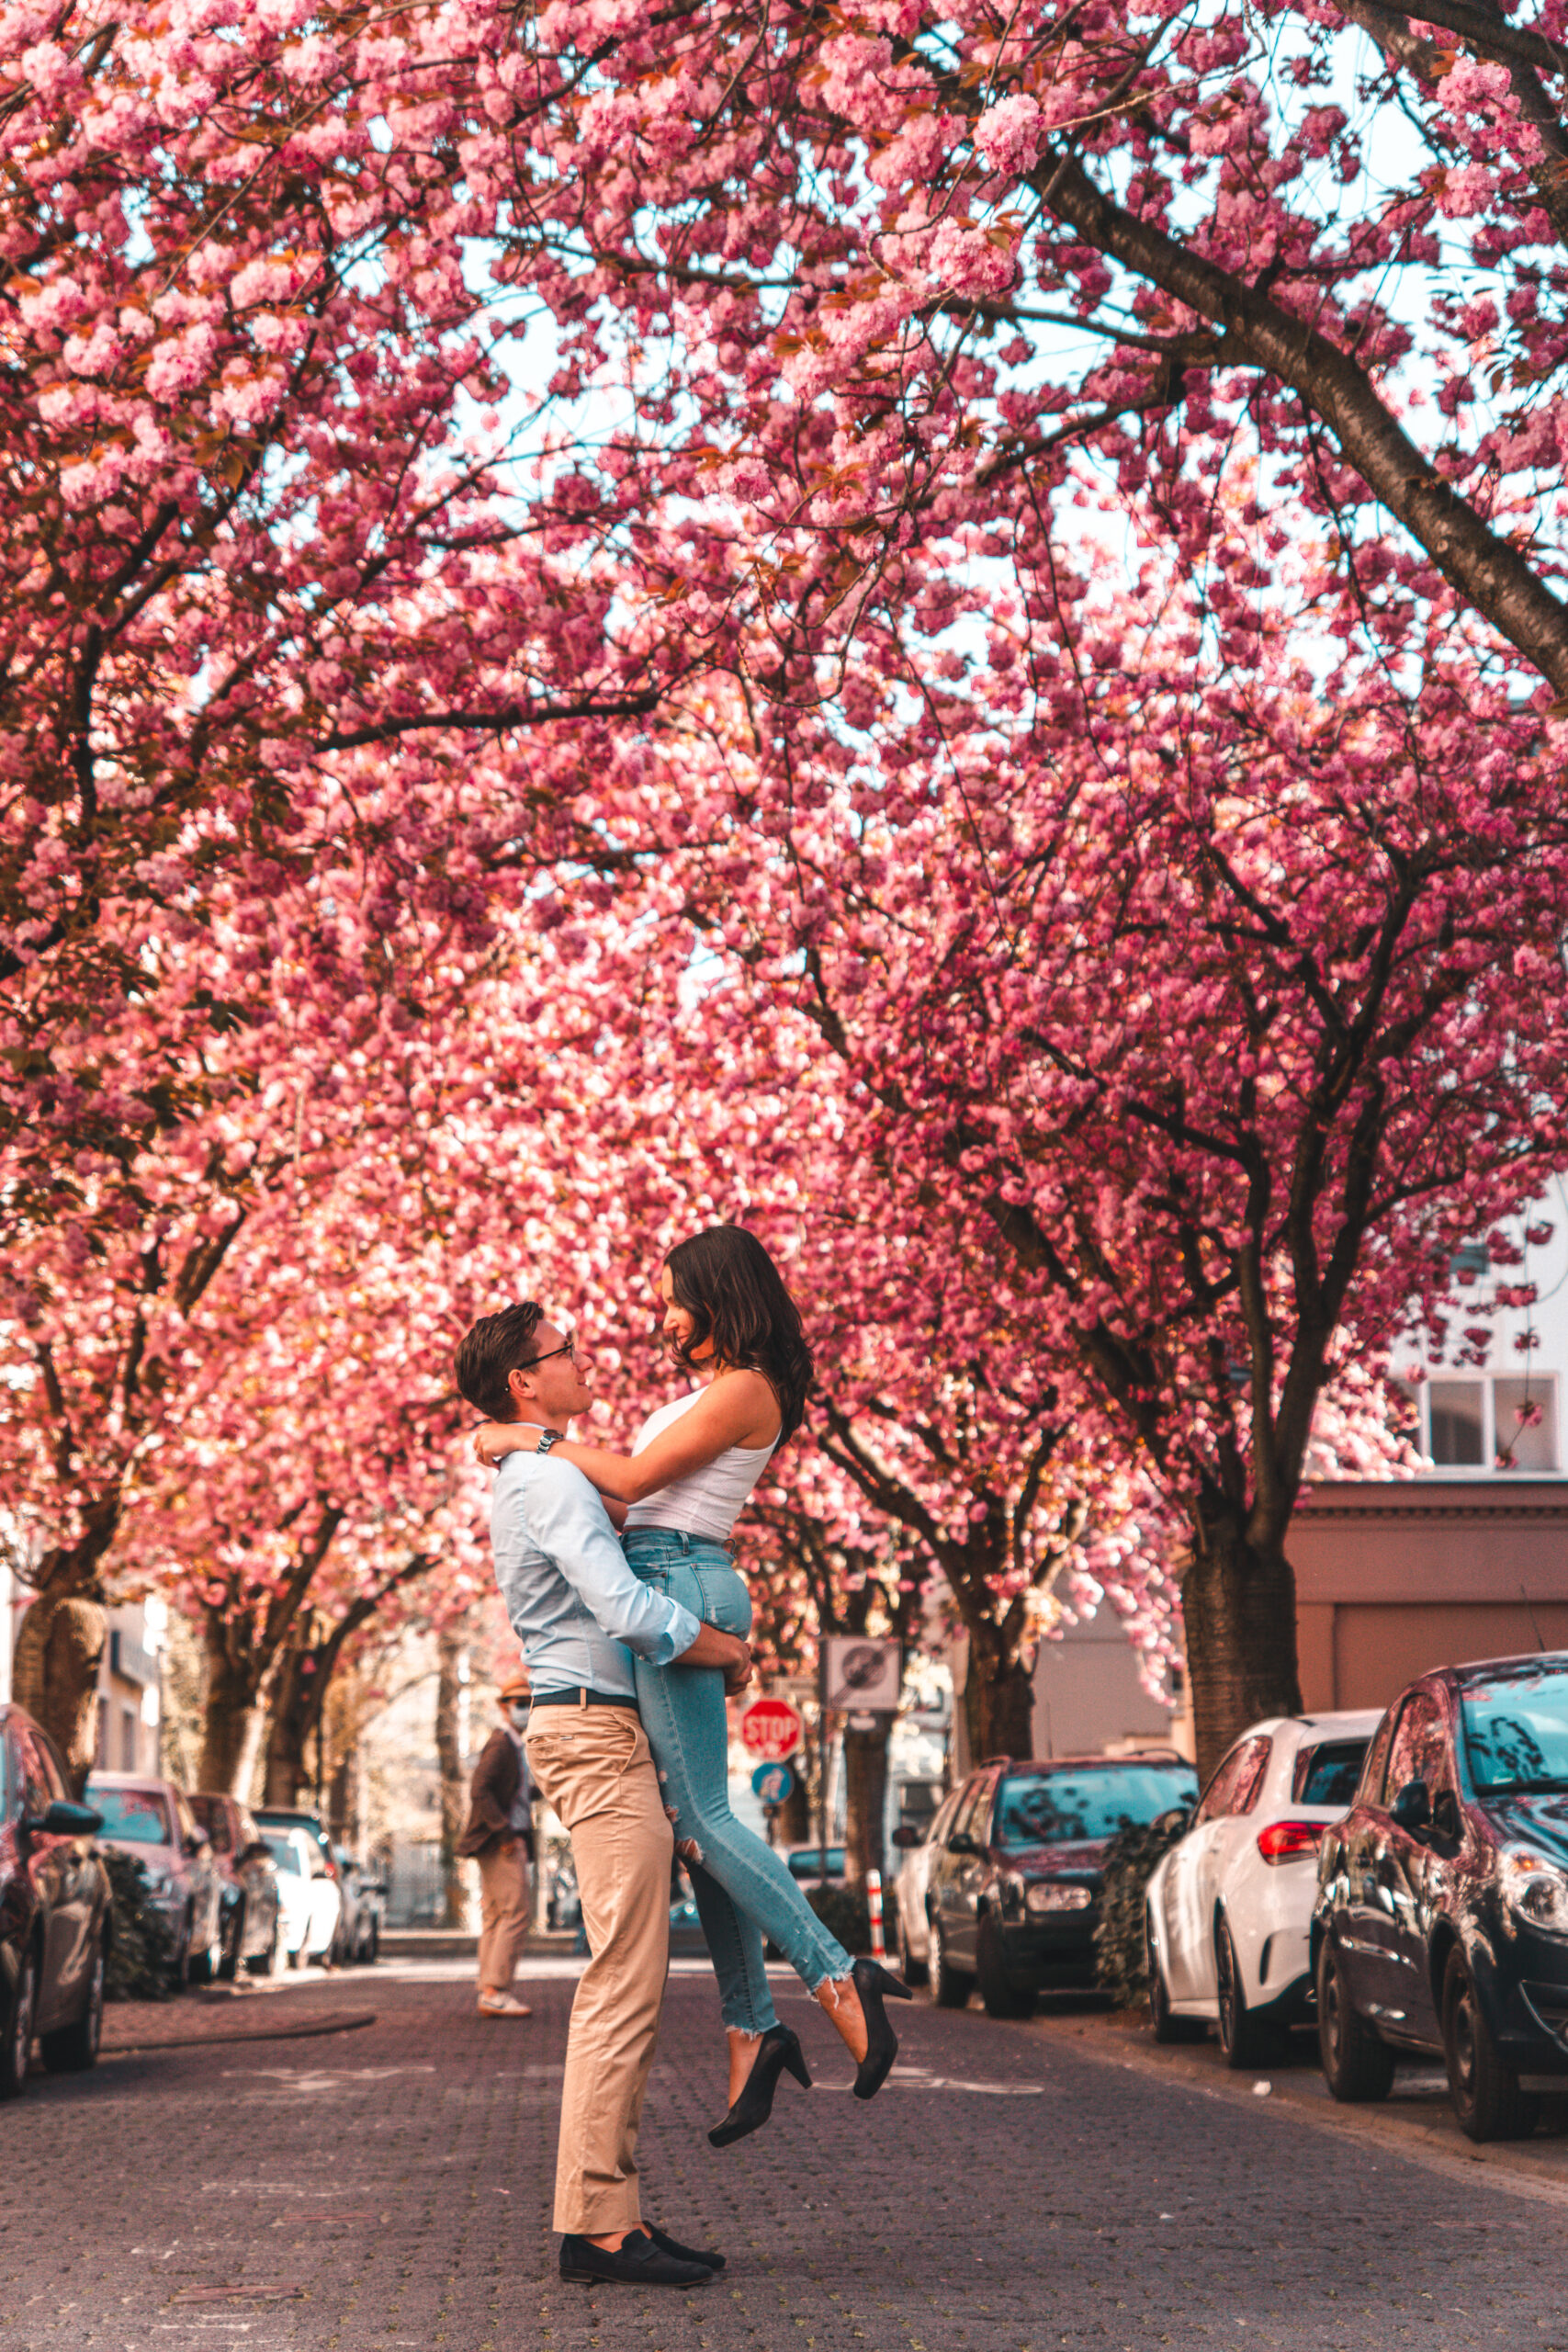 The Complete Guide to Cherry Blossoms in Bonn